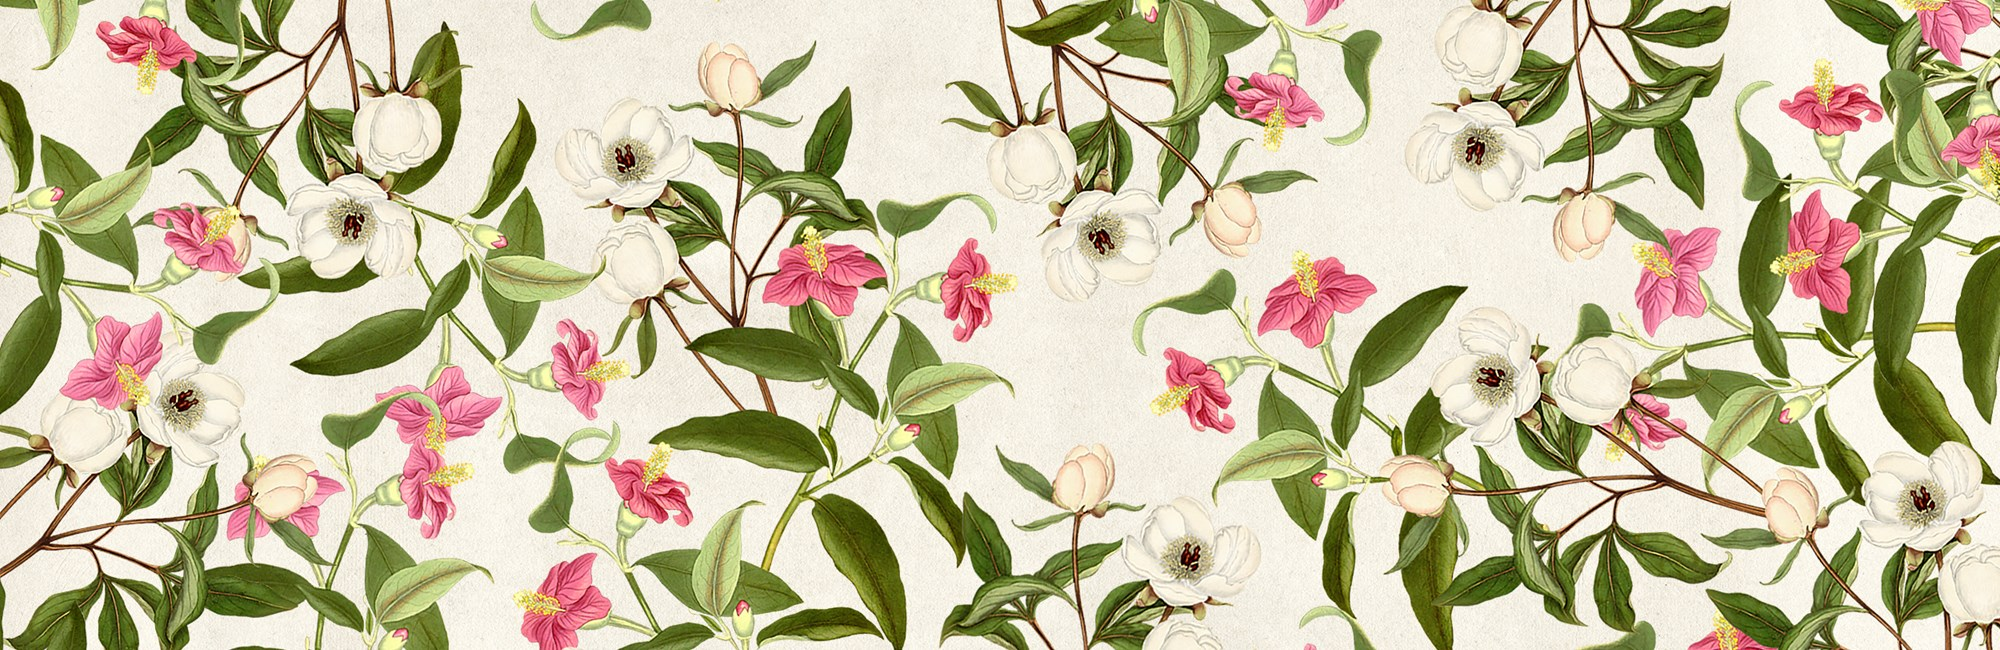 hs banner 2500x1500 floral background 1